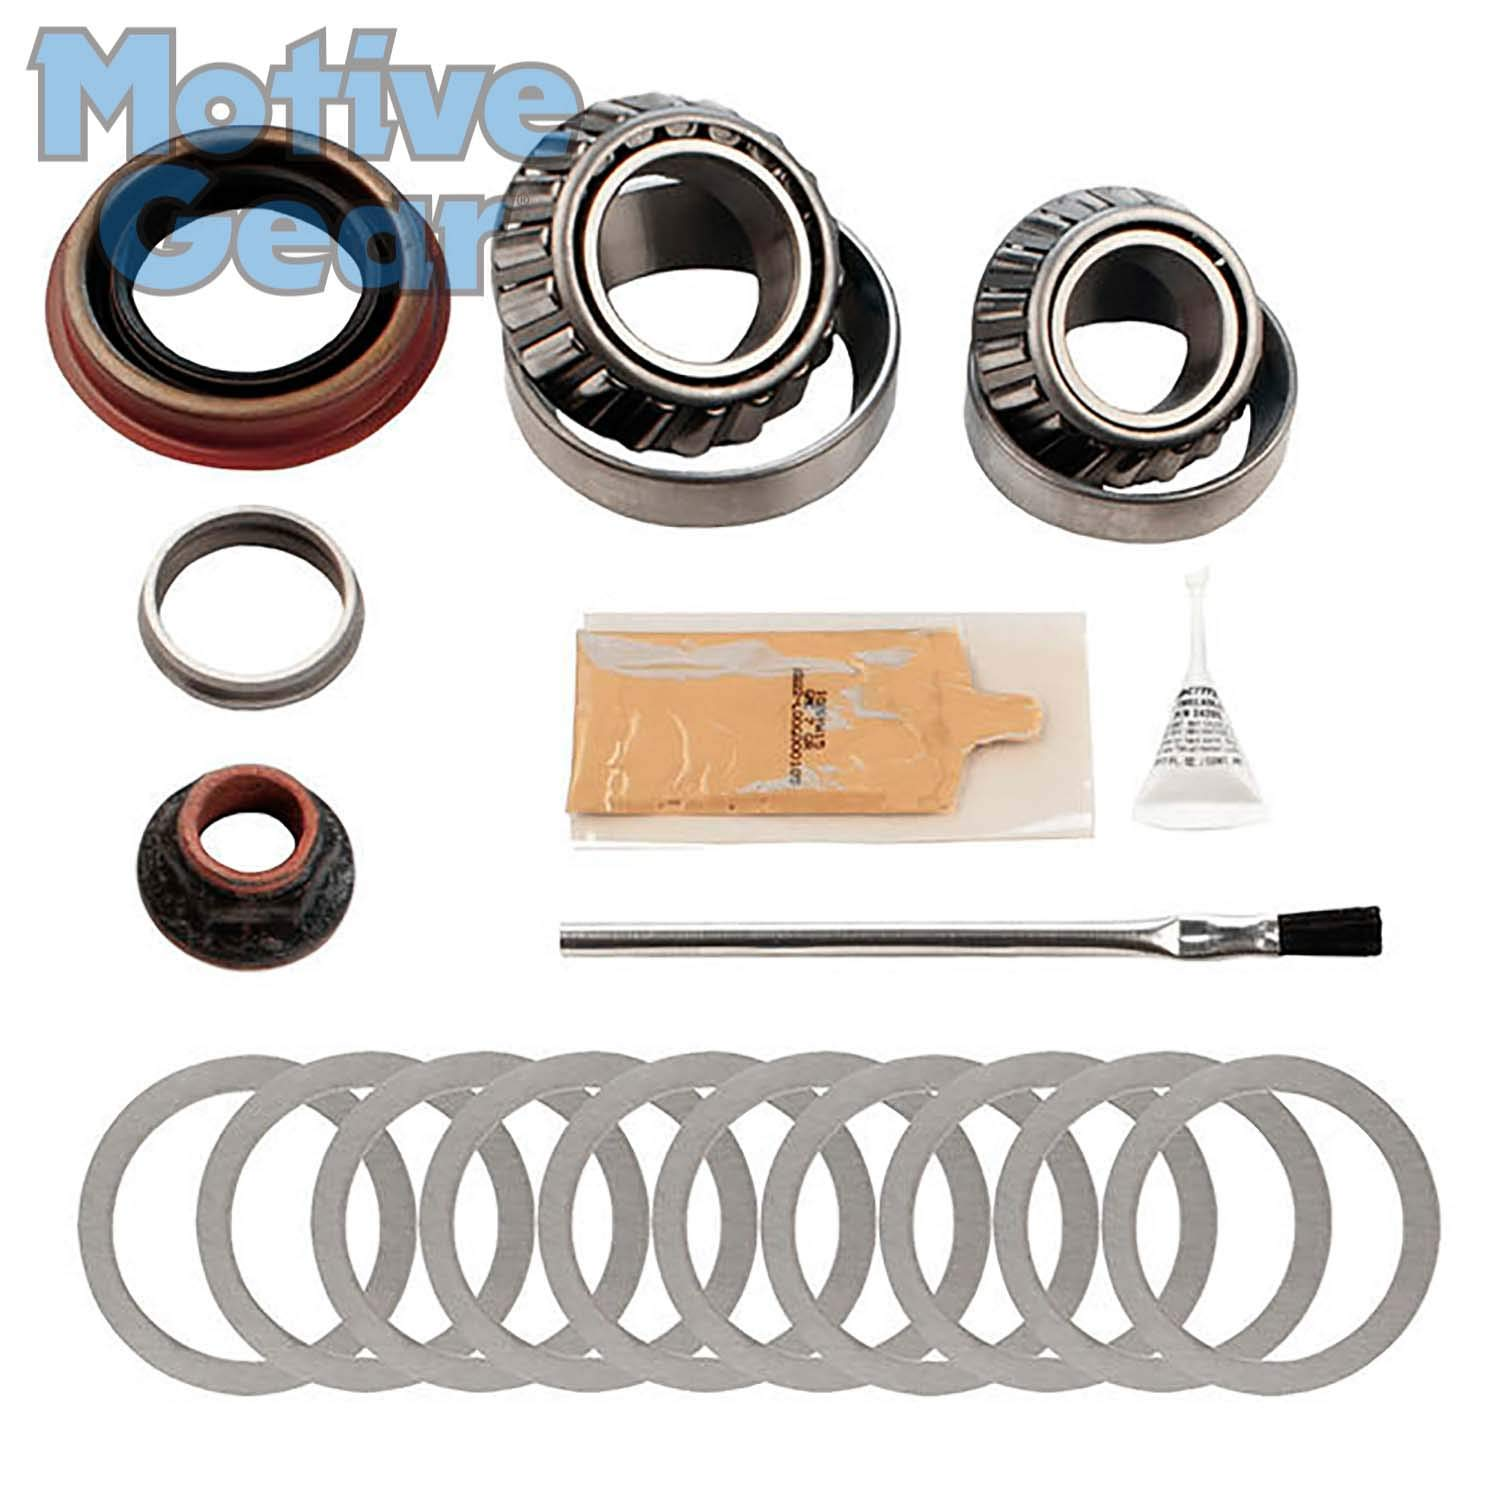 Motive Gear R8.8RTPK Light Duty Timken Bearing Kit, PBK Ford 8.8'' '81-'09 by Motive Gear